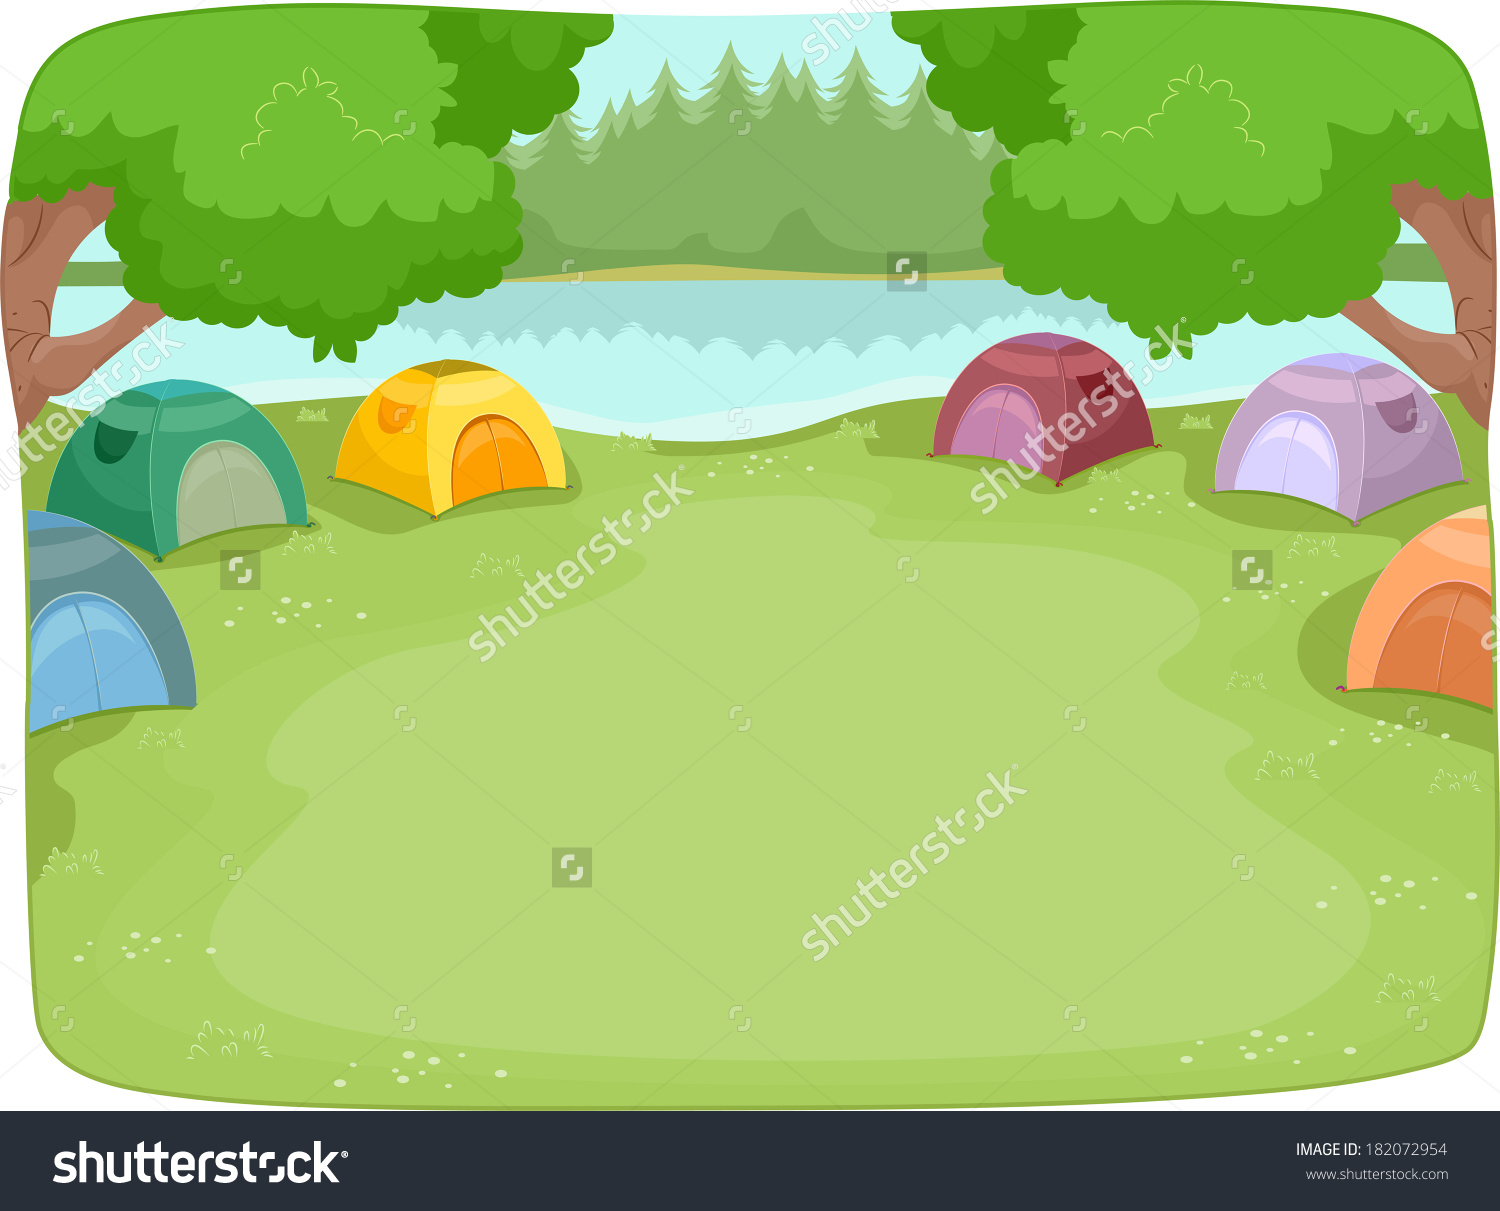 Illustration Of A Lakeside Camp Site Filled With Colorful Camping.